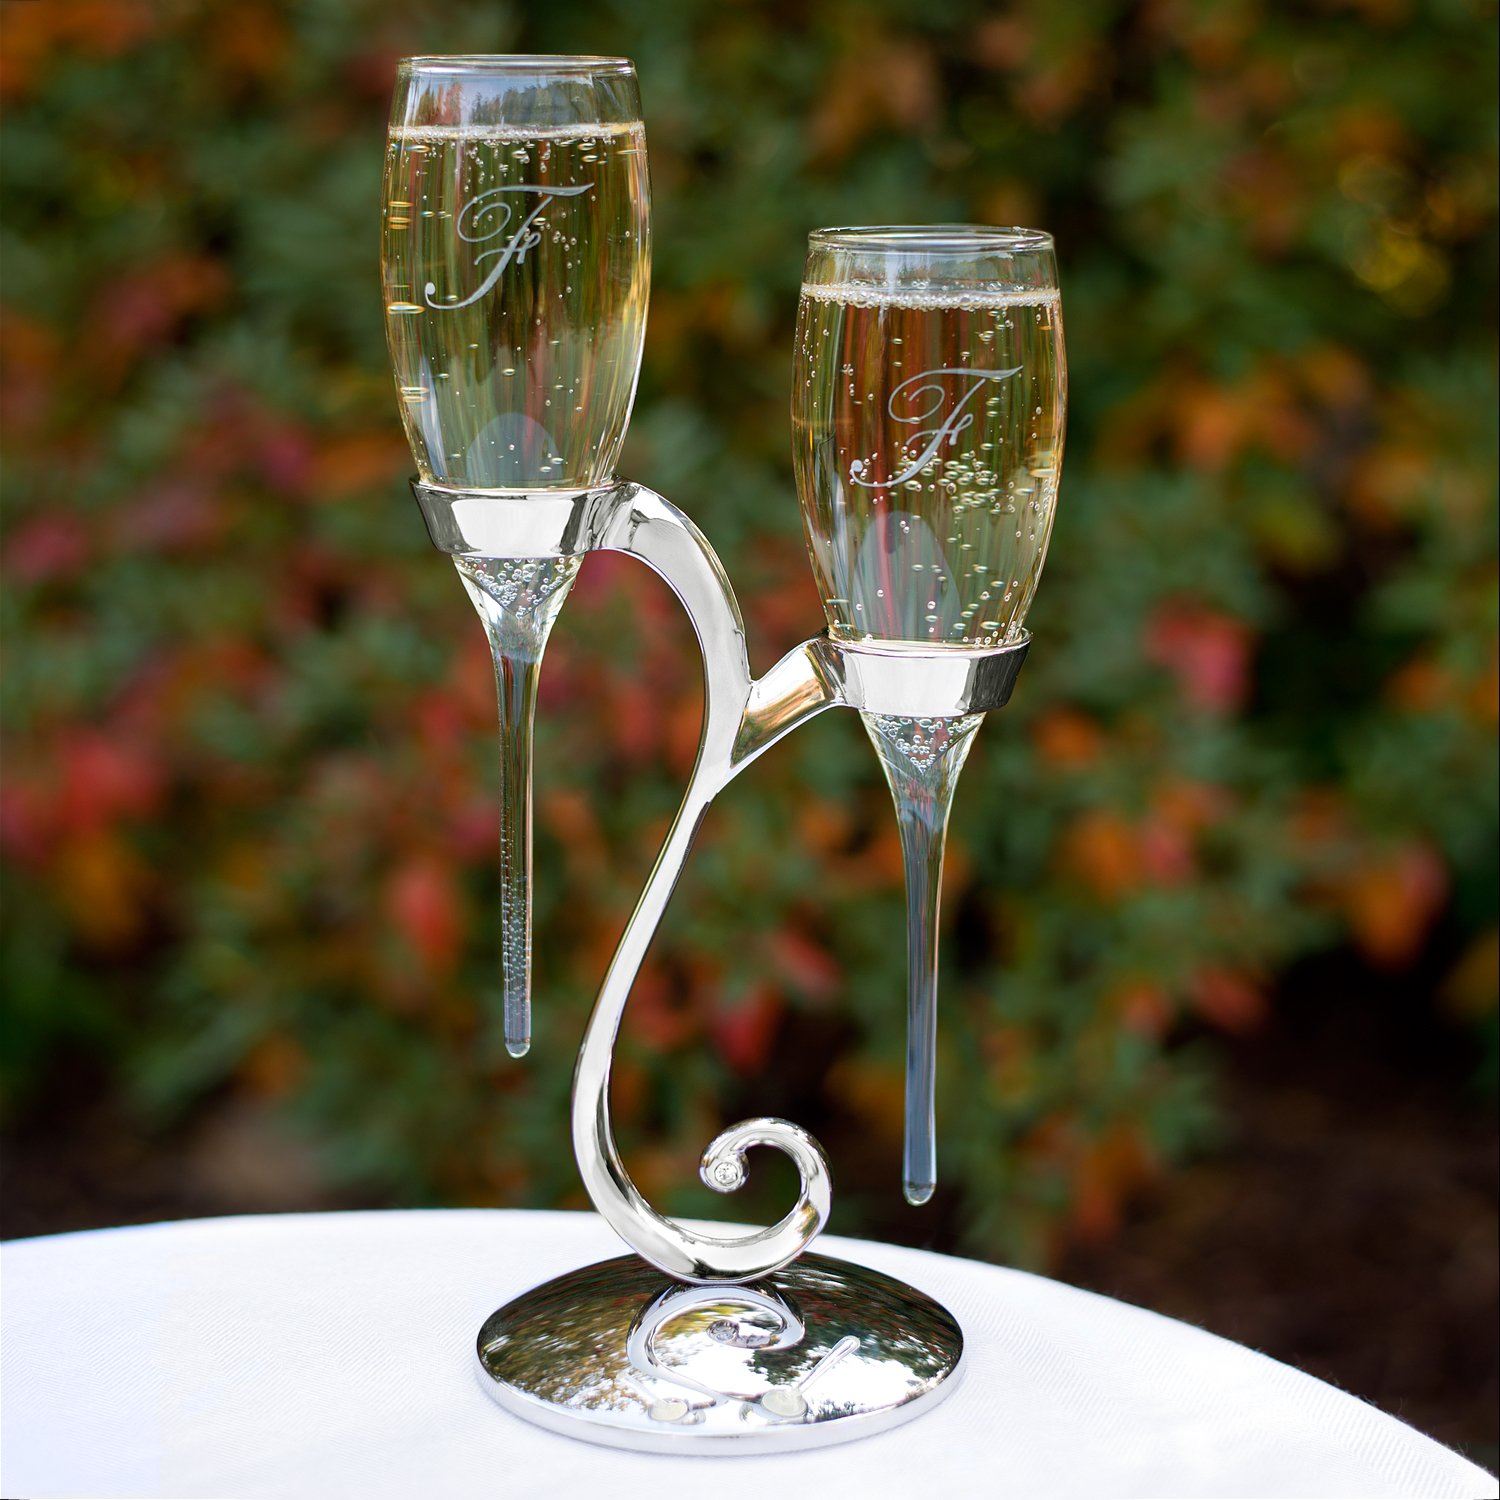 Wedding Wedding Toasting Flutes amazon com hortense b hewitt raindrop toasting flutes with swirl stand wedding accessories home kitchen